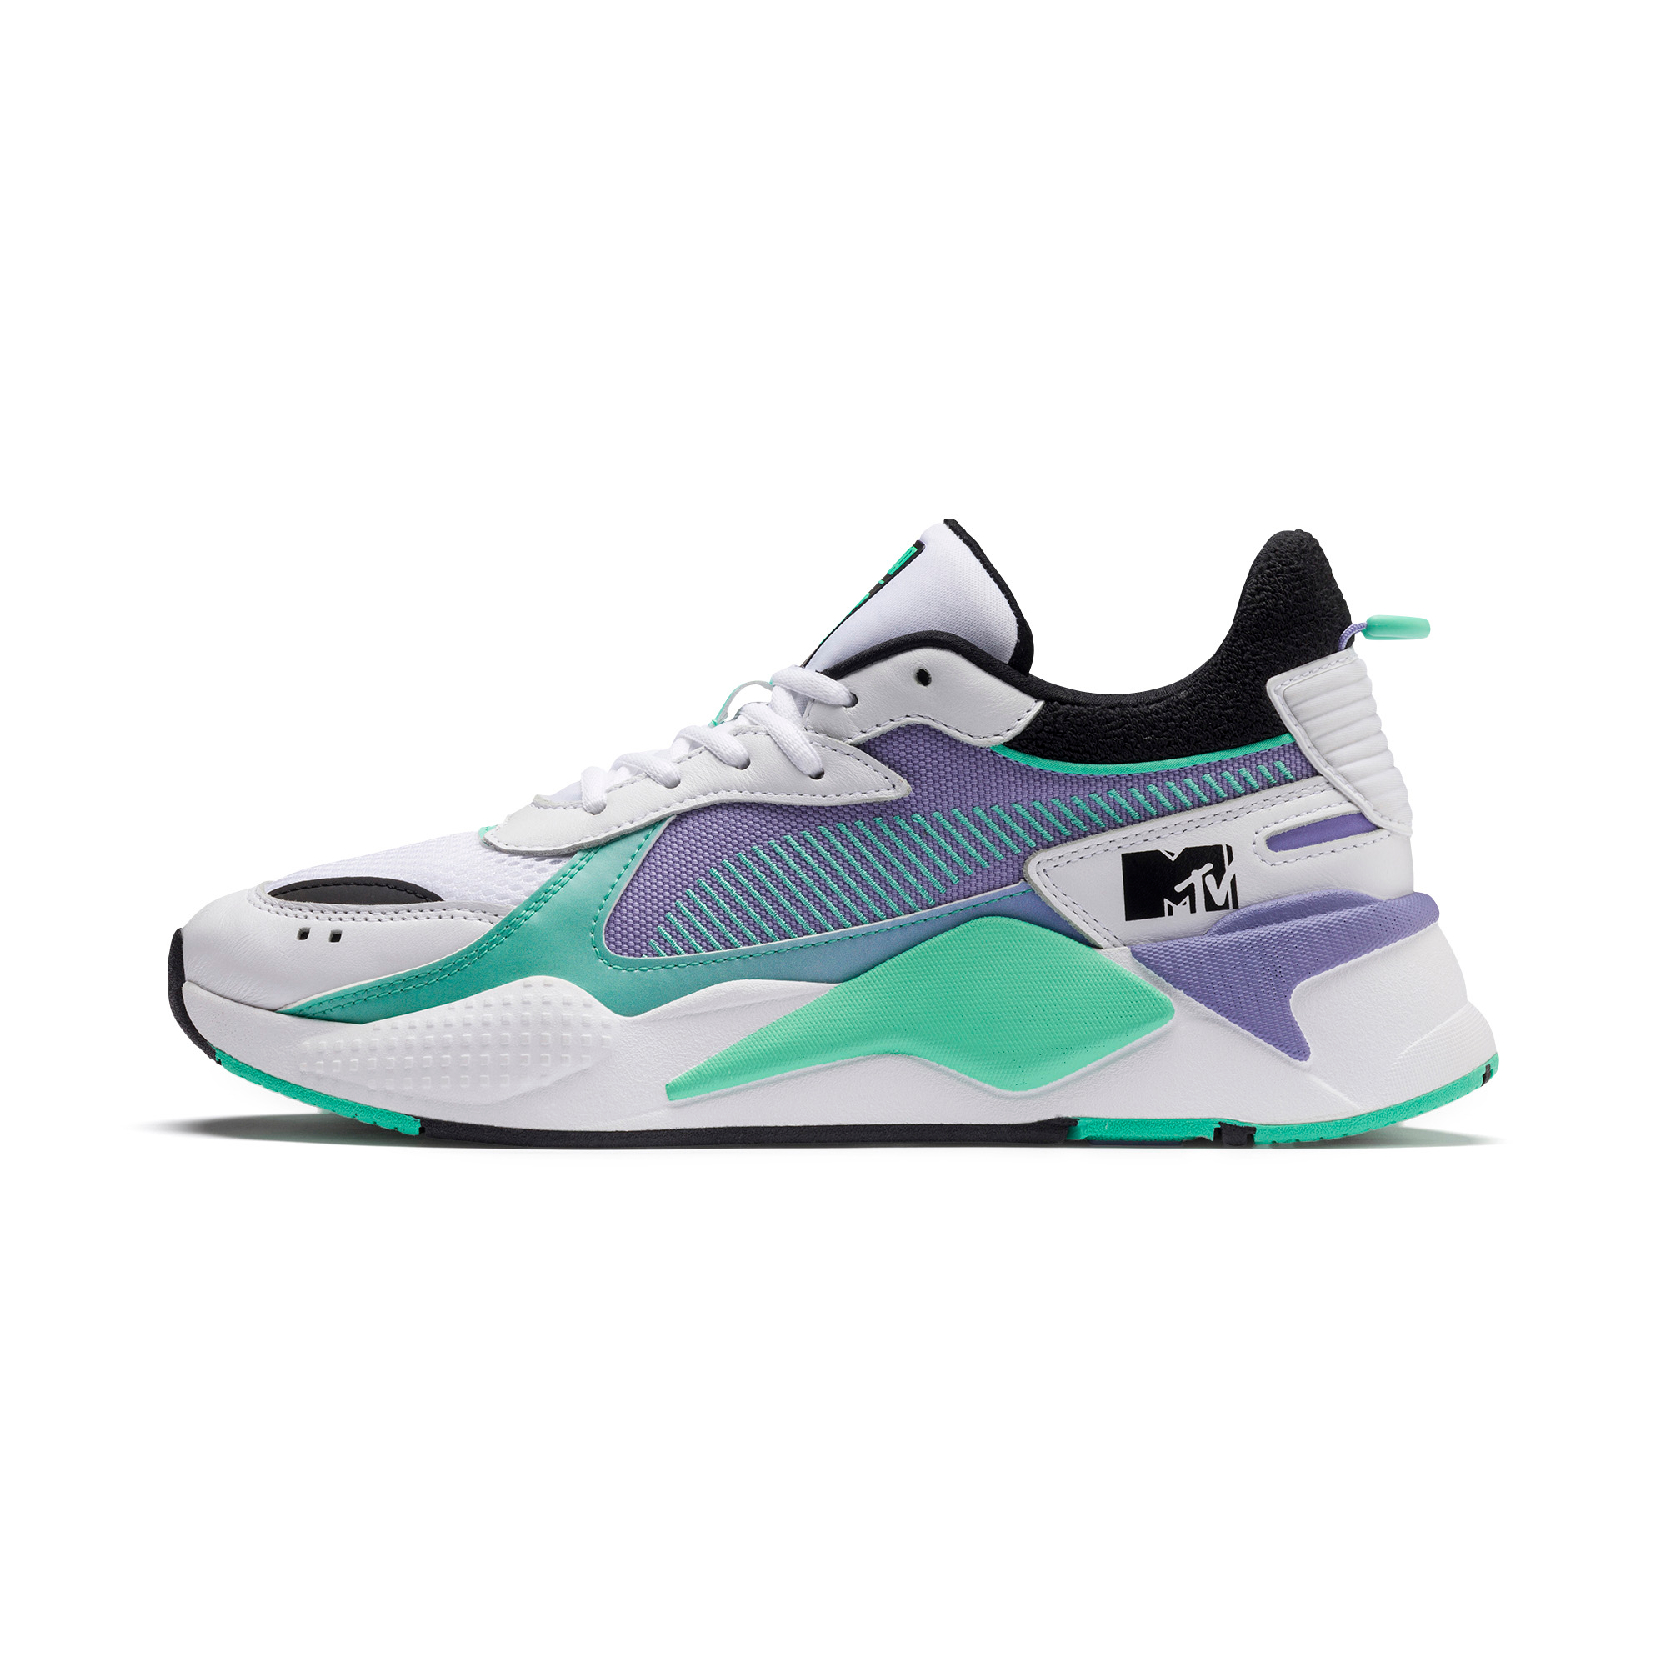 PUMA RS-X Tracks MTV Gradient Blaze in PUMA White – Sweet Lavender | £95 RRP